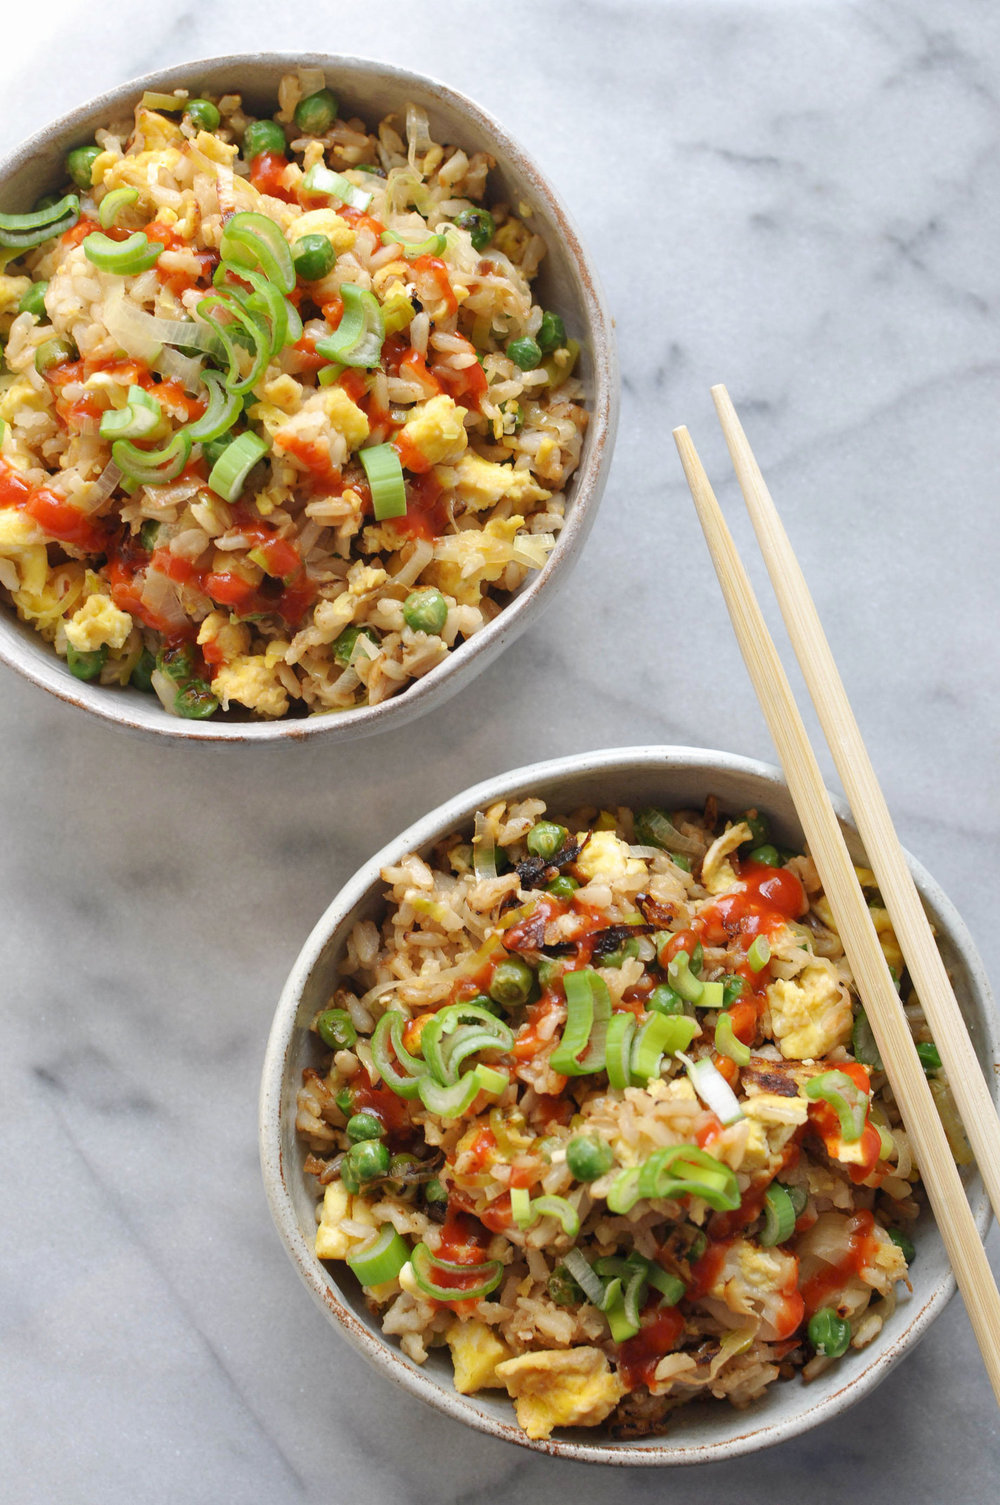 Leek & Pea Fried Rice from Shiny Happy Bright